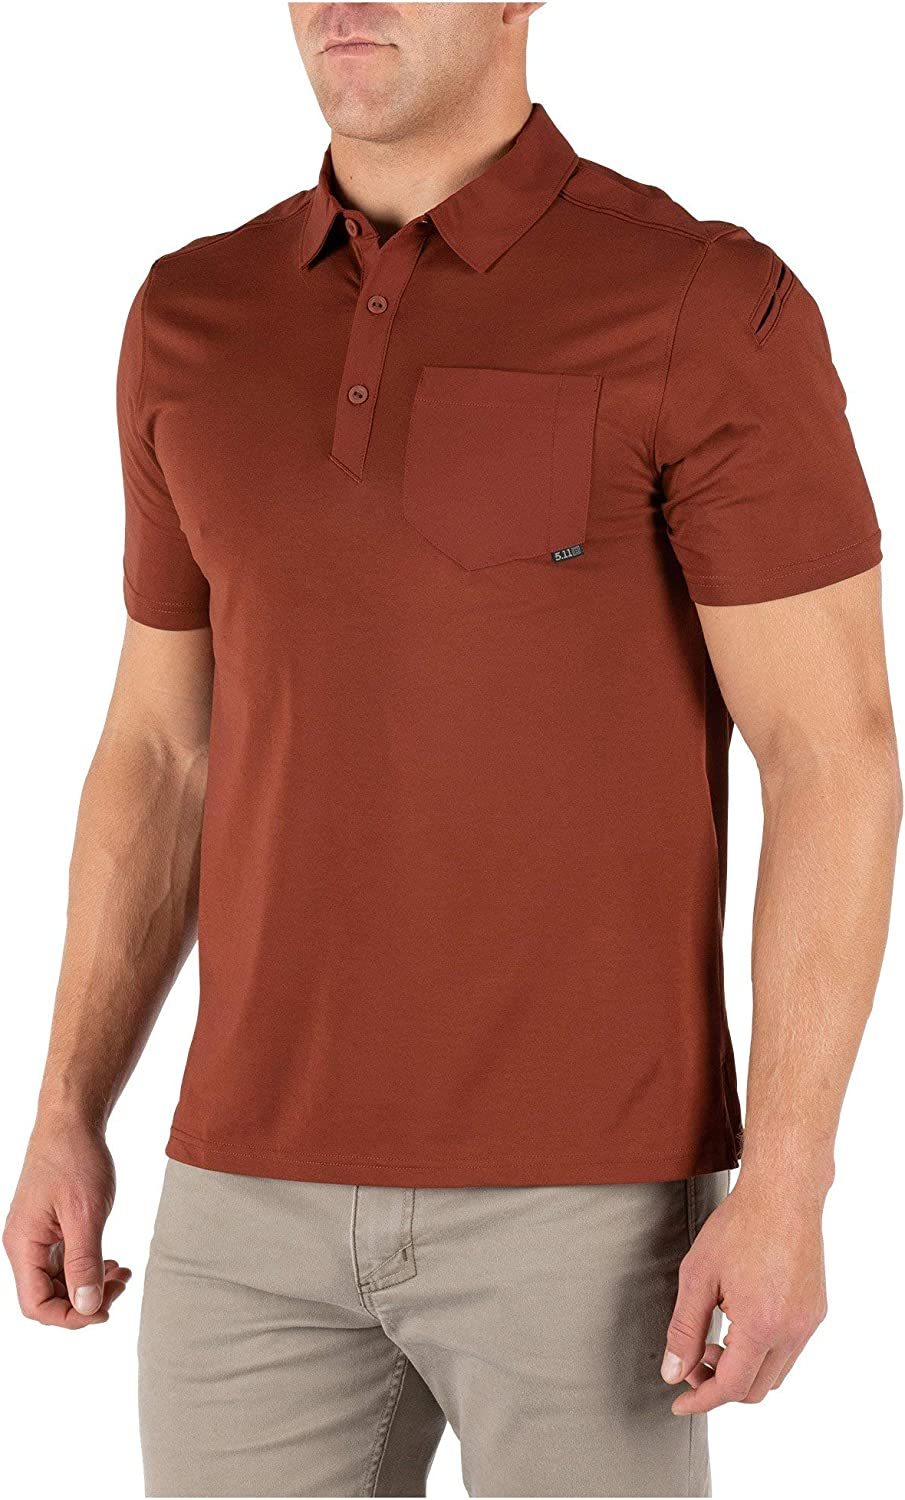 Style 41219 Abrasion-Resistant 5.11 Tactical Mens Axis Short Sleeve Shirt Polo